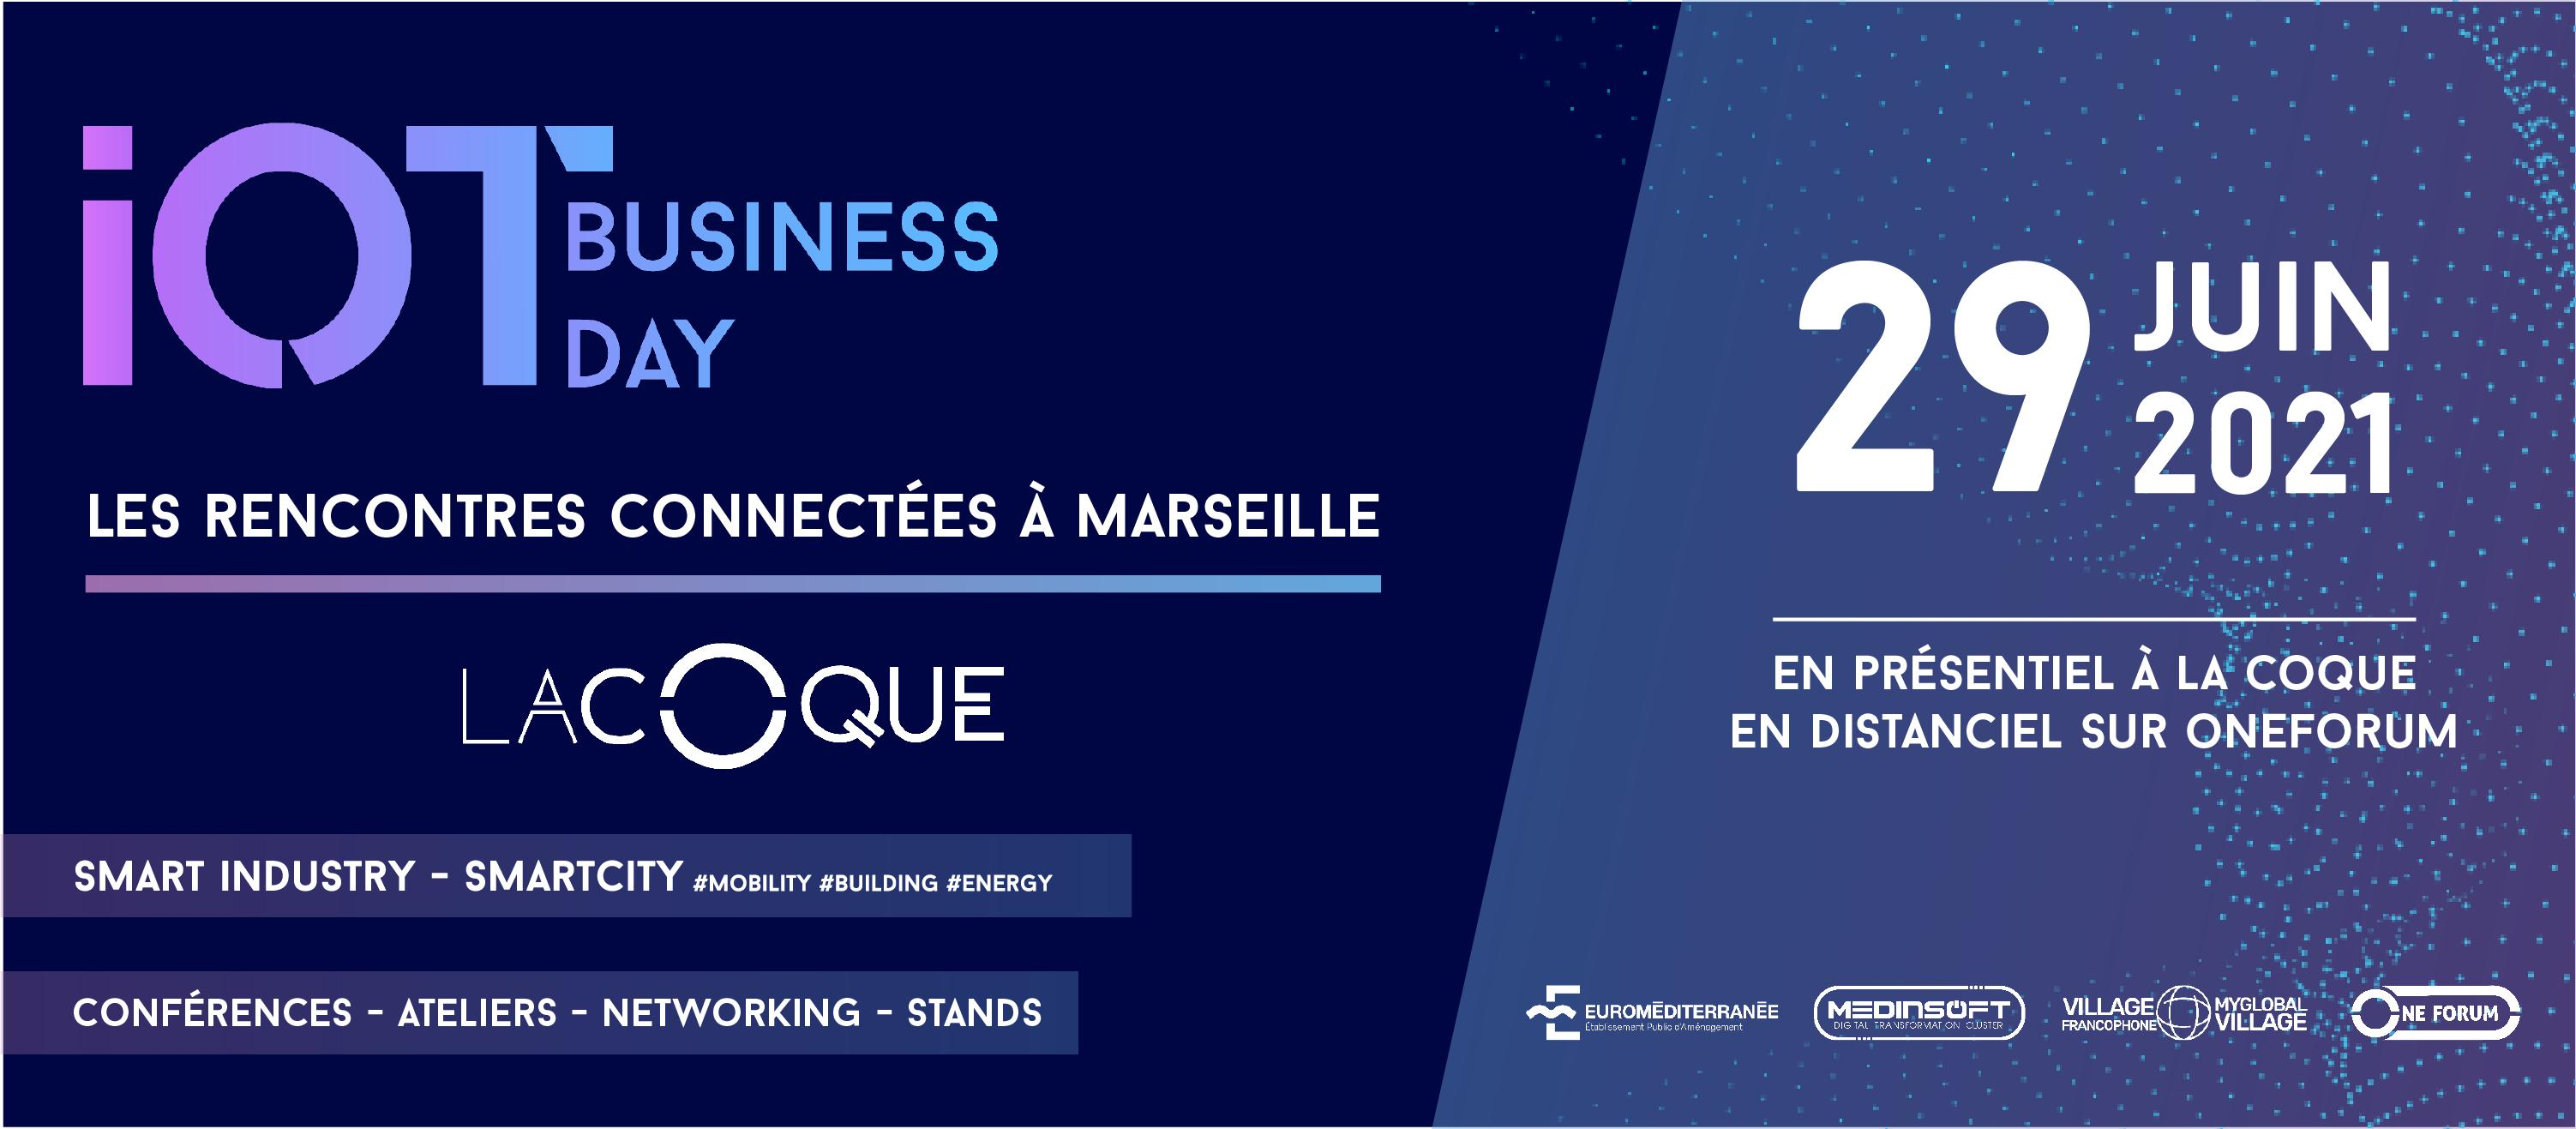 IOT Business Day – 29 juin 2021